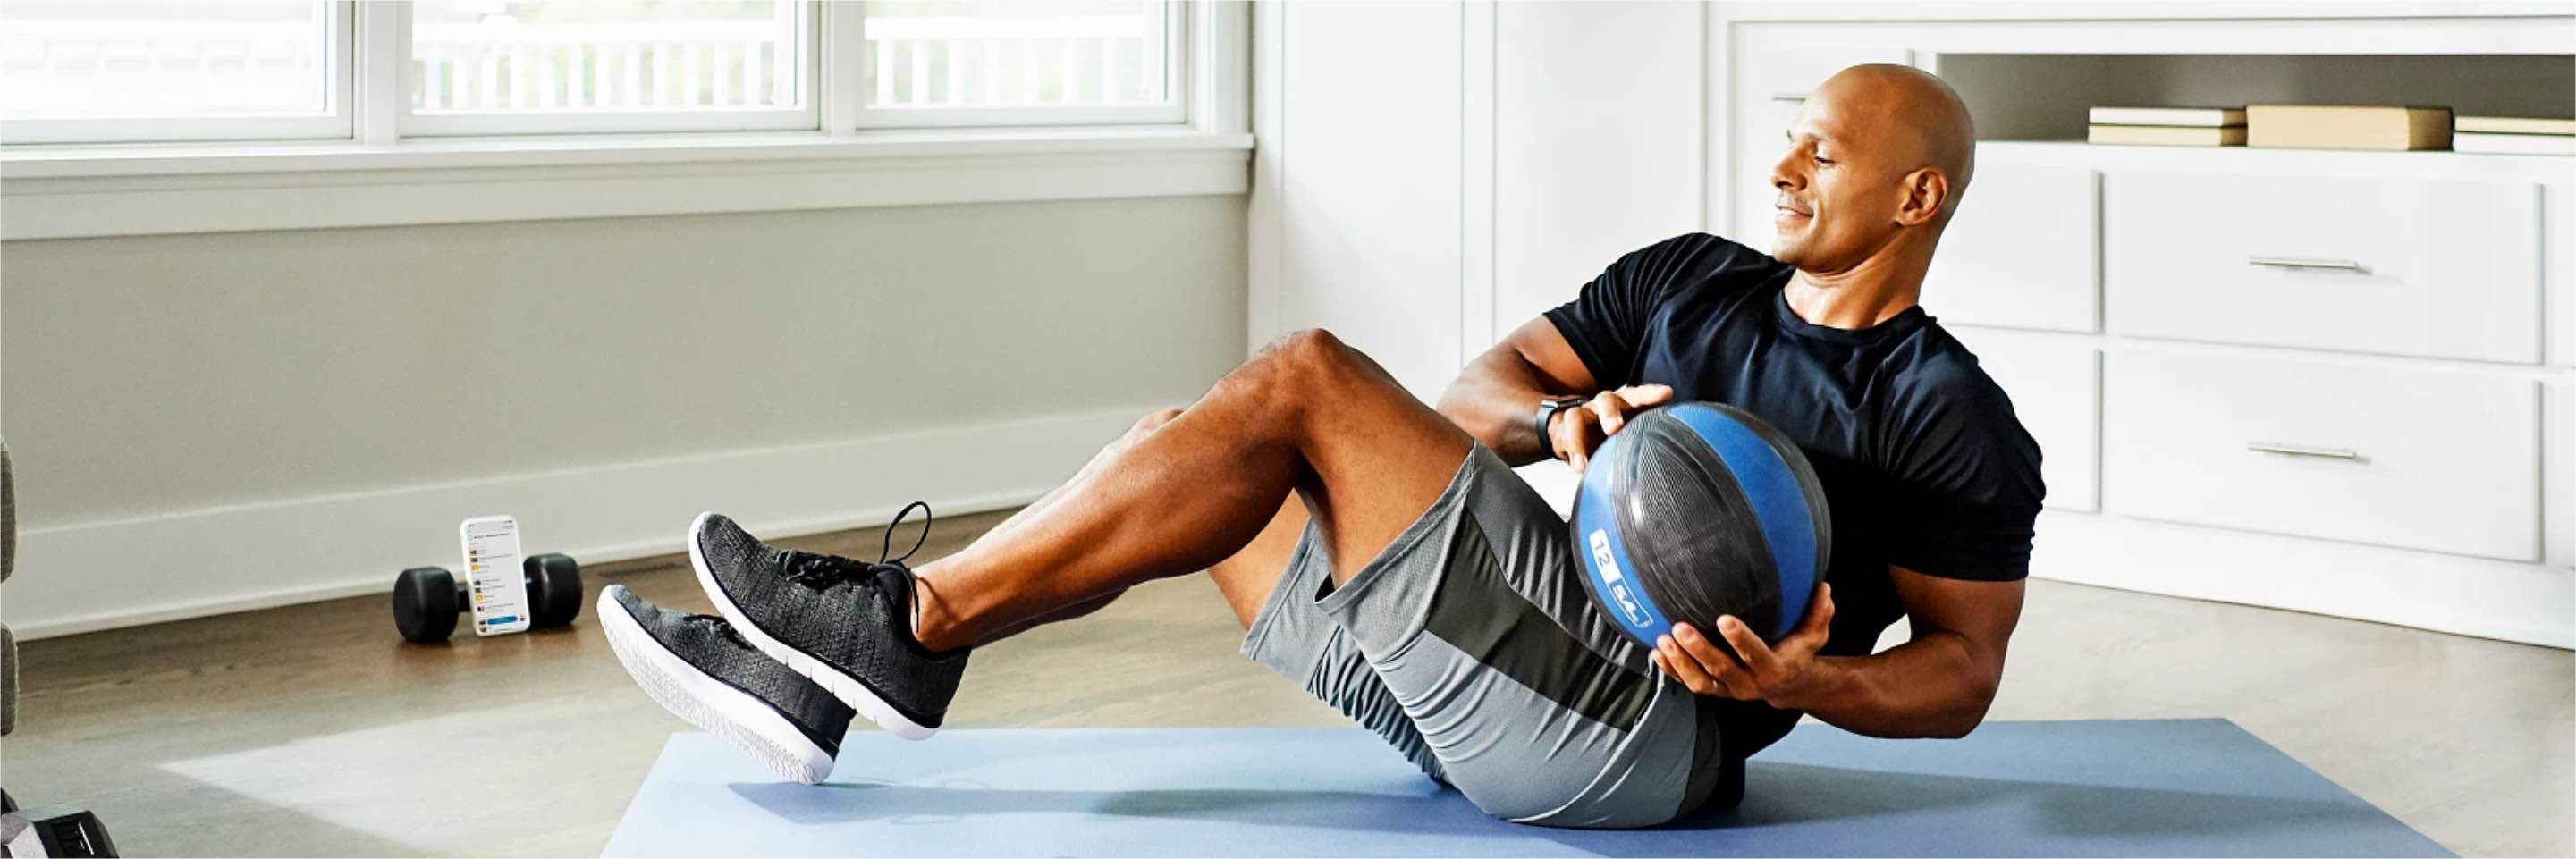 A man completes a medicine ball workout at home